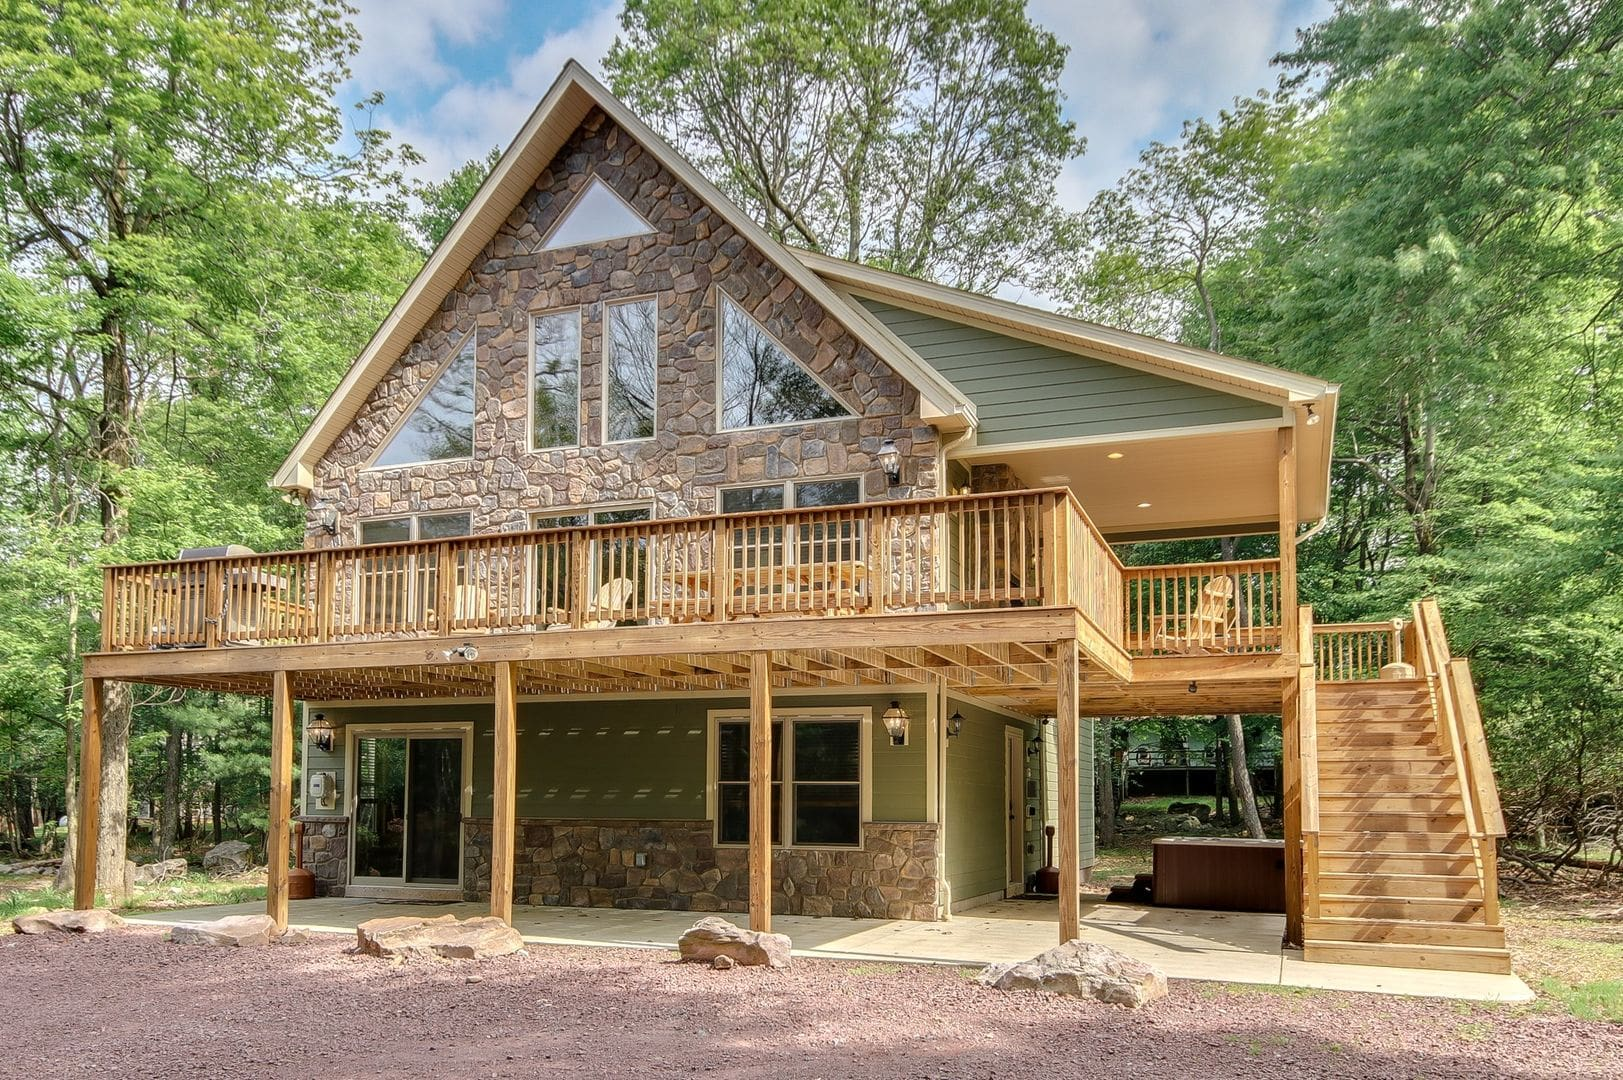 6 Bed Poconos Cabins For Rent this Weekend  Book Luxury